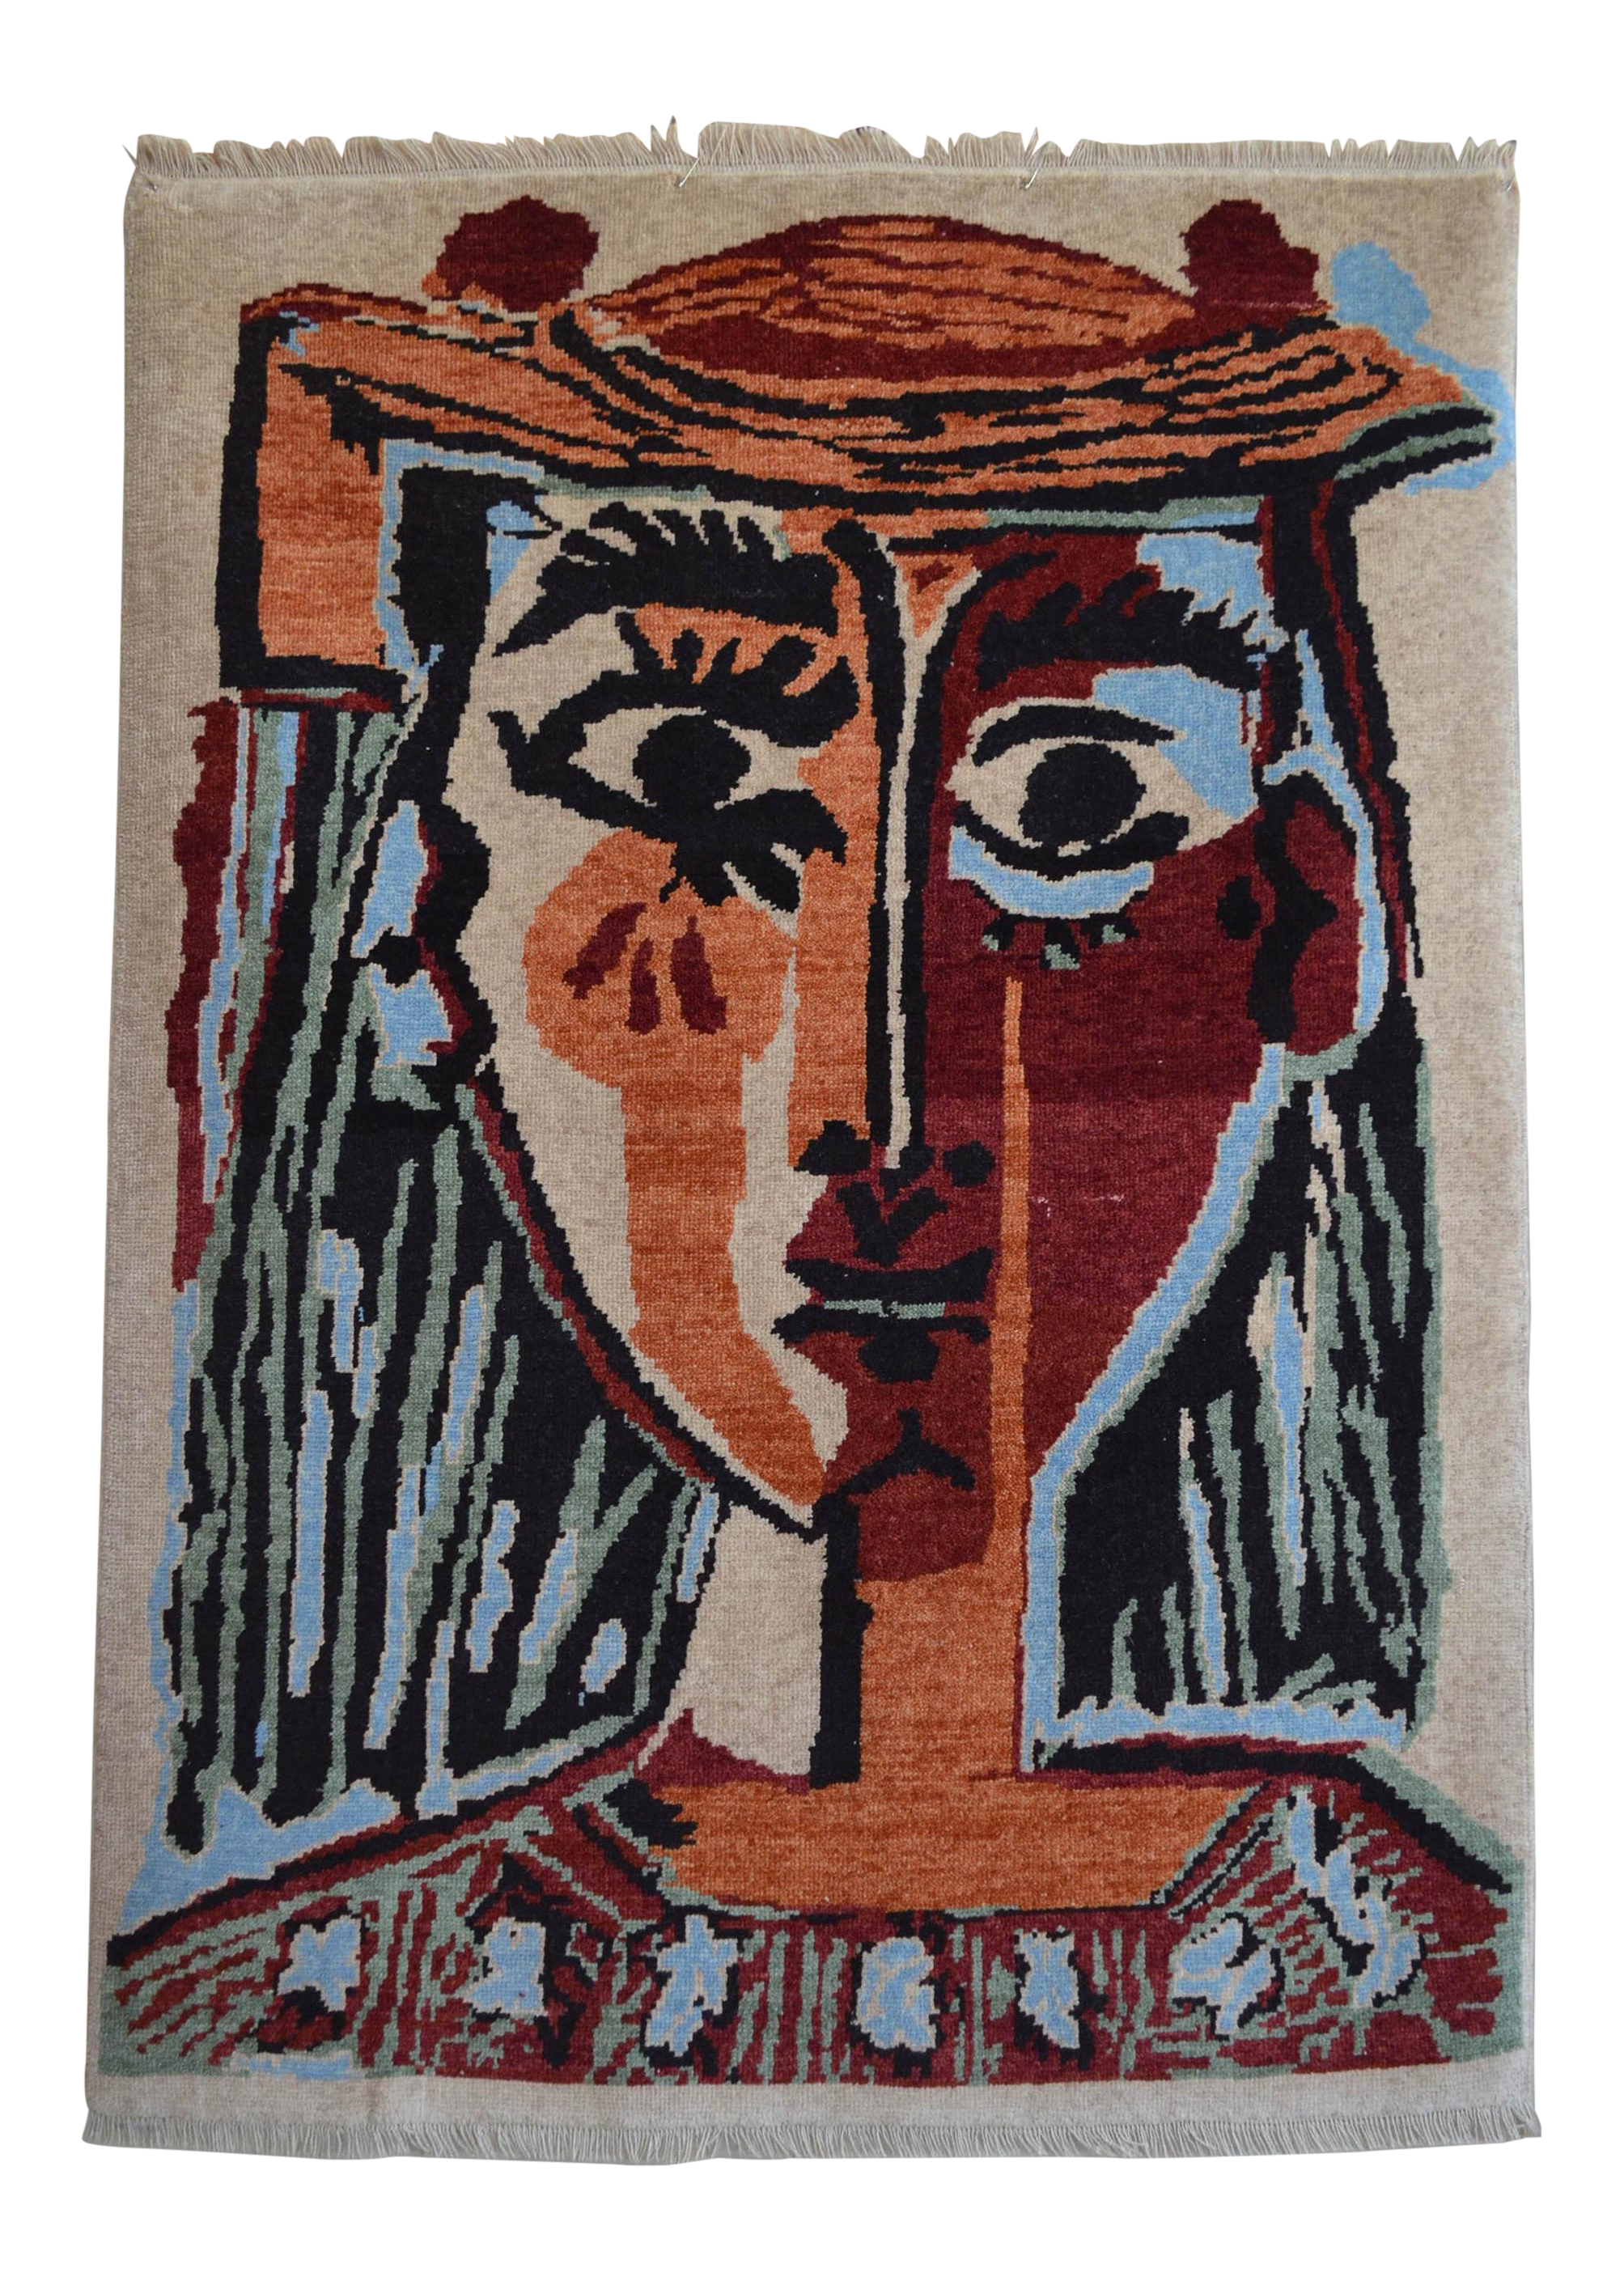 Pablo Picasso Bust Of A Woman Inspired Hand Knotted Area Rug Wall Rug 4 5 5 Chairish